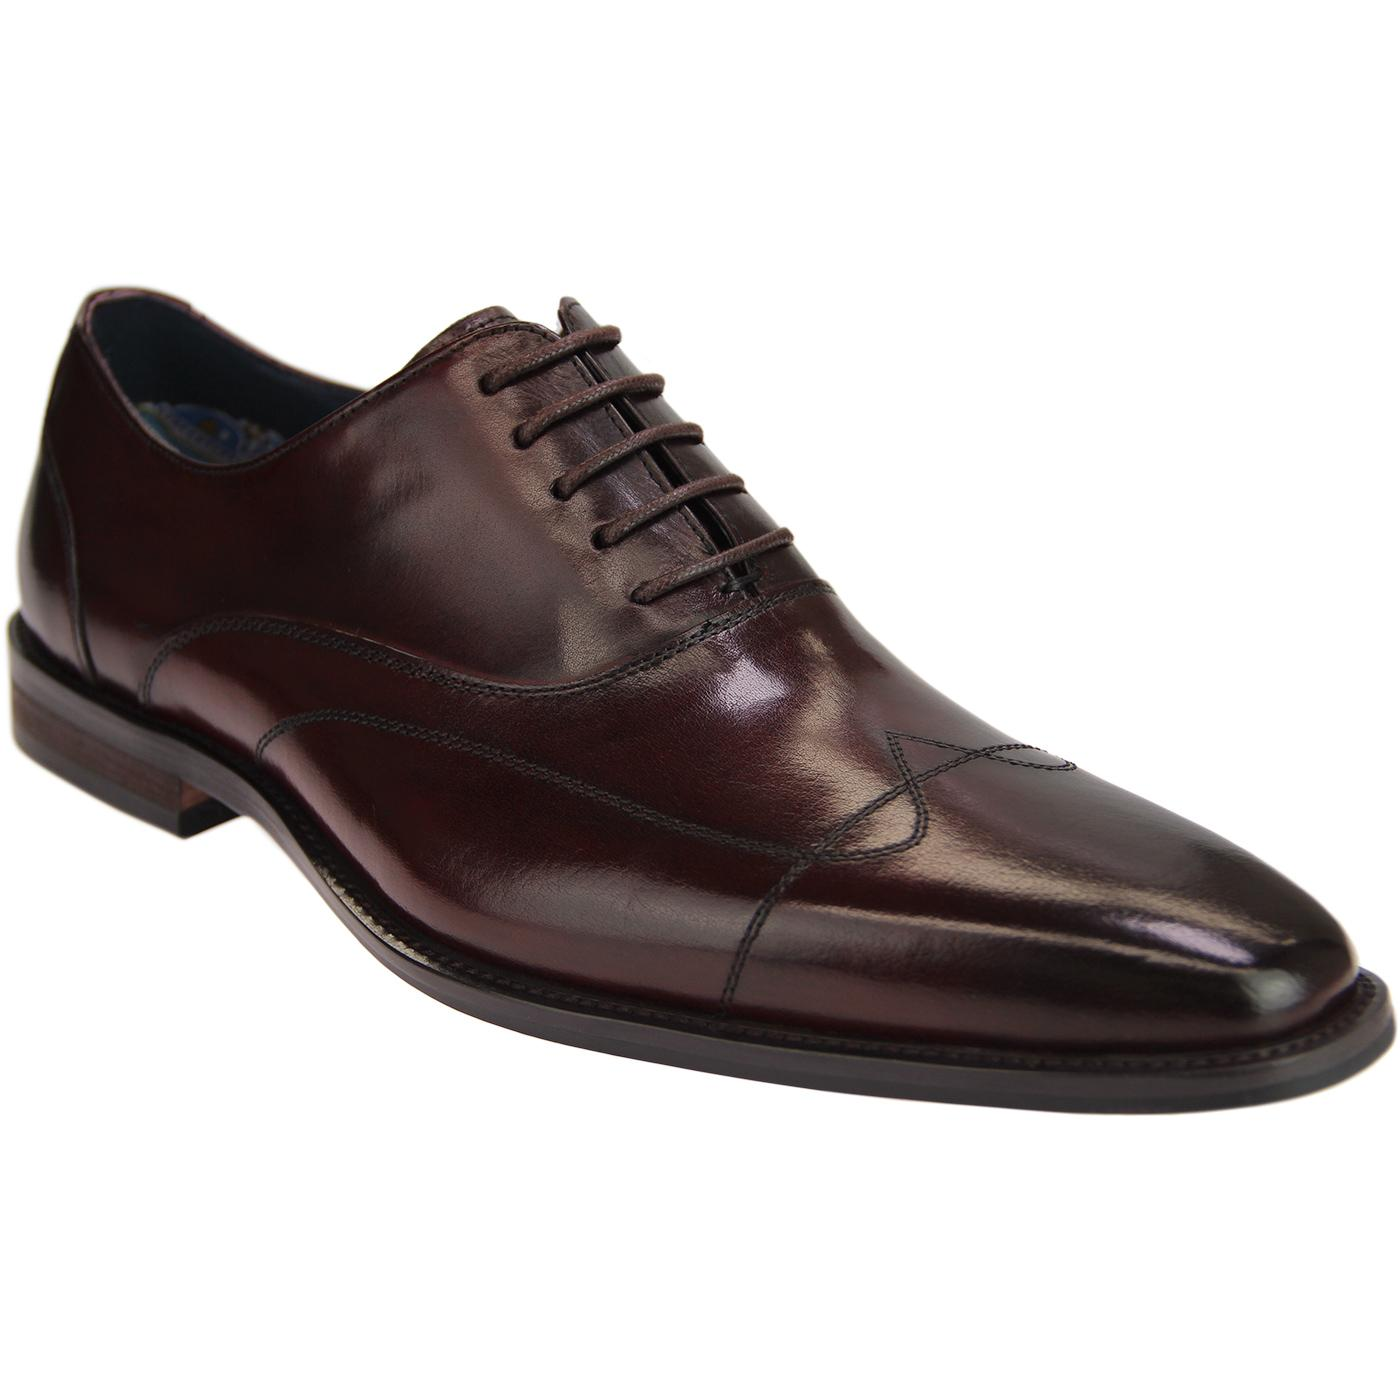 Dave PAOLO VANDINI Retro Stitched Wingtip shoes W